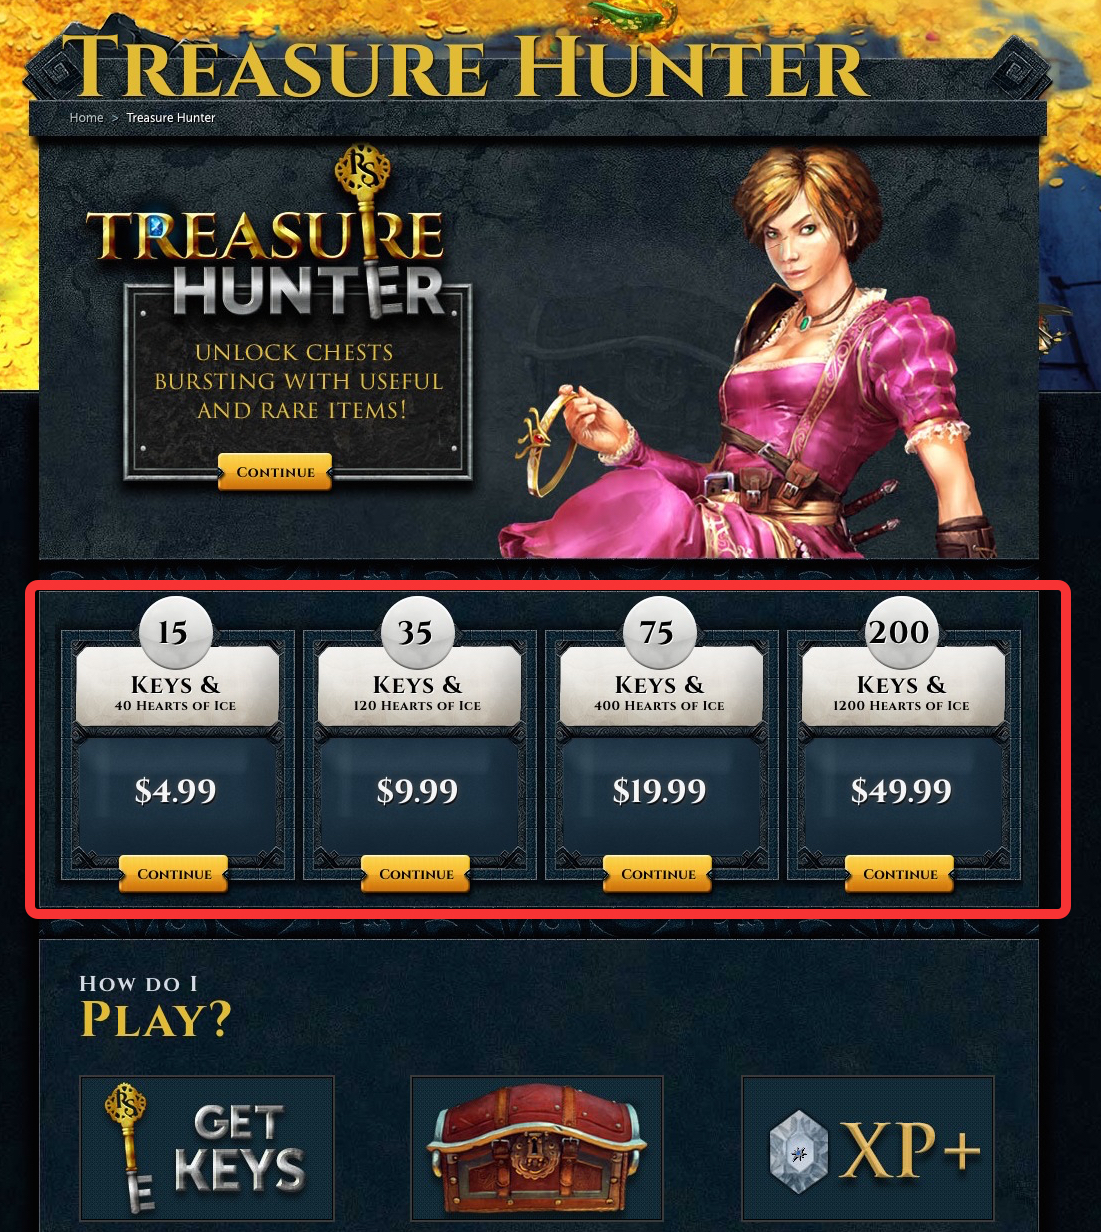 RuneScape Treasure Hunter variation page